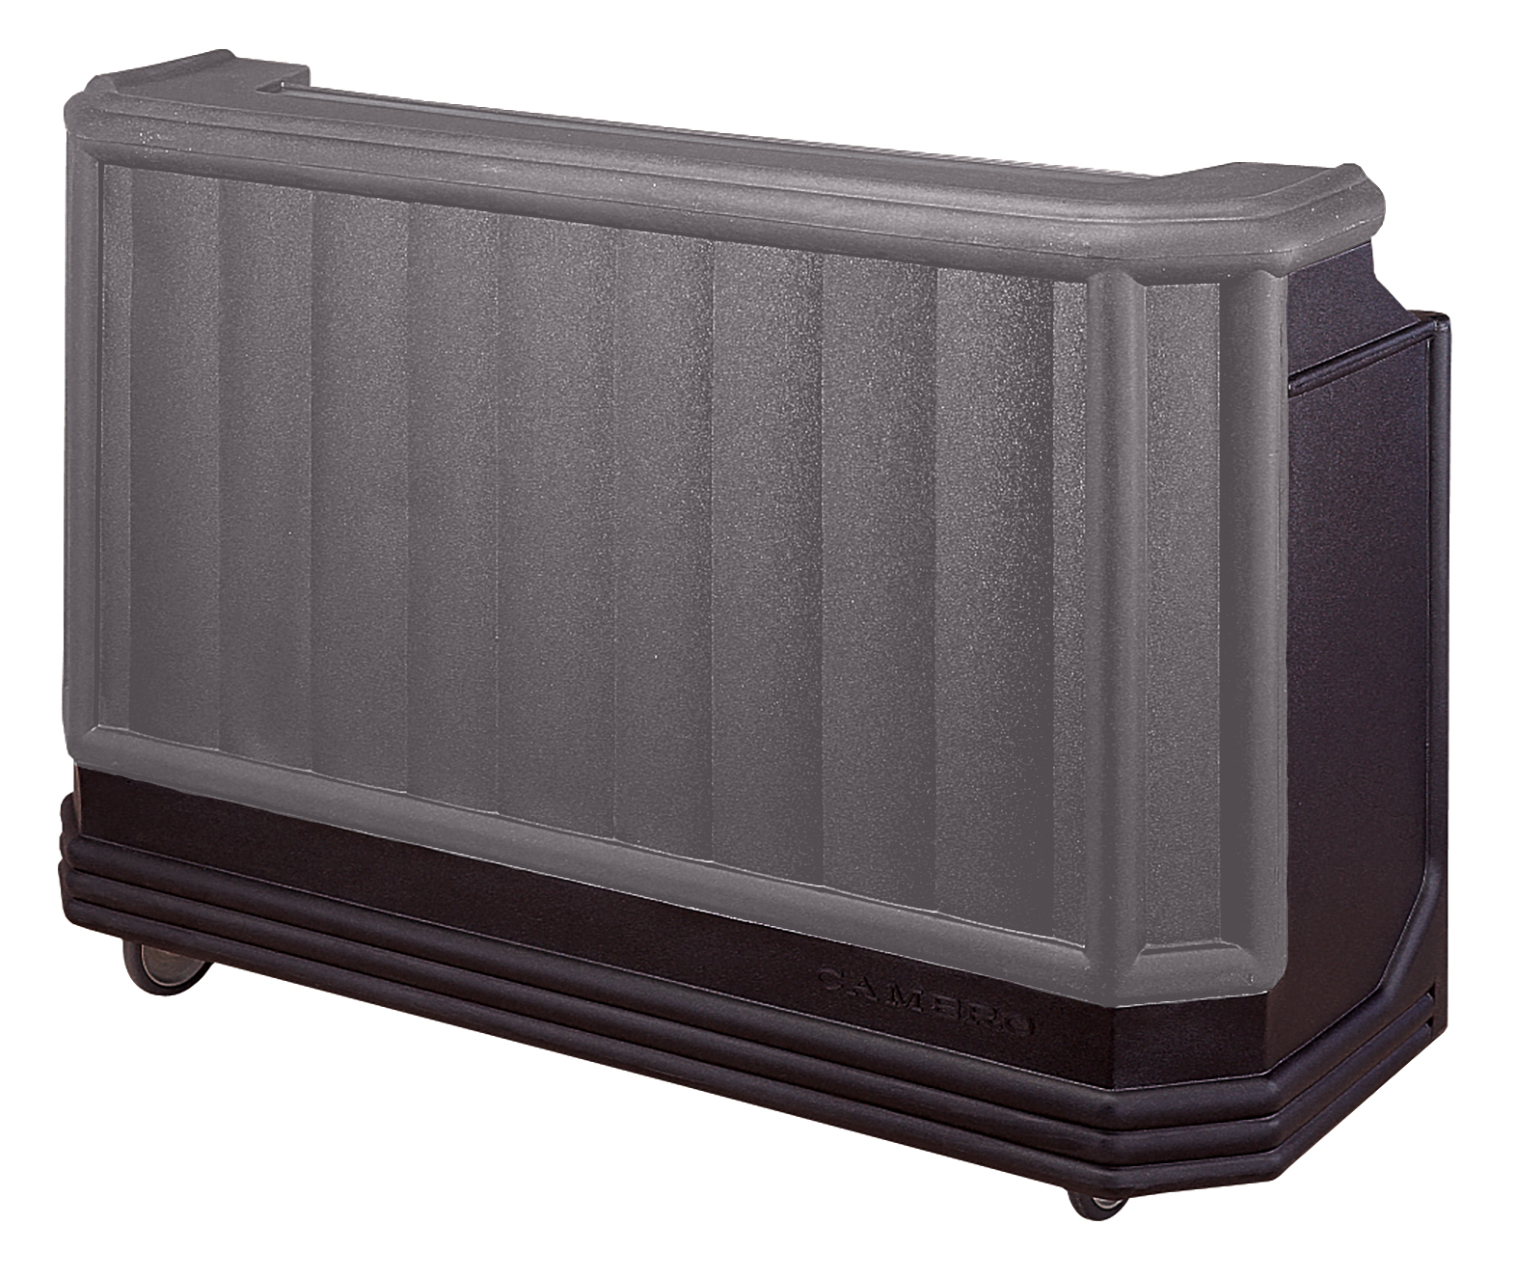 Cambro BAR730PMT420 portable bar